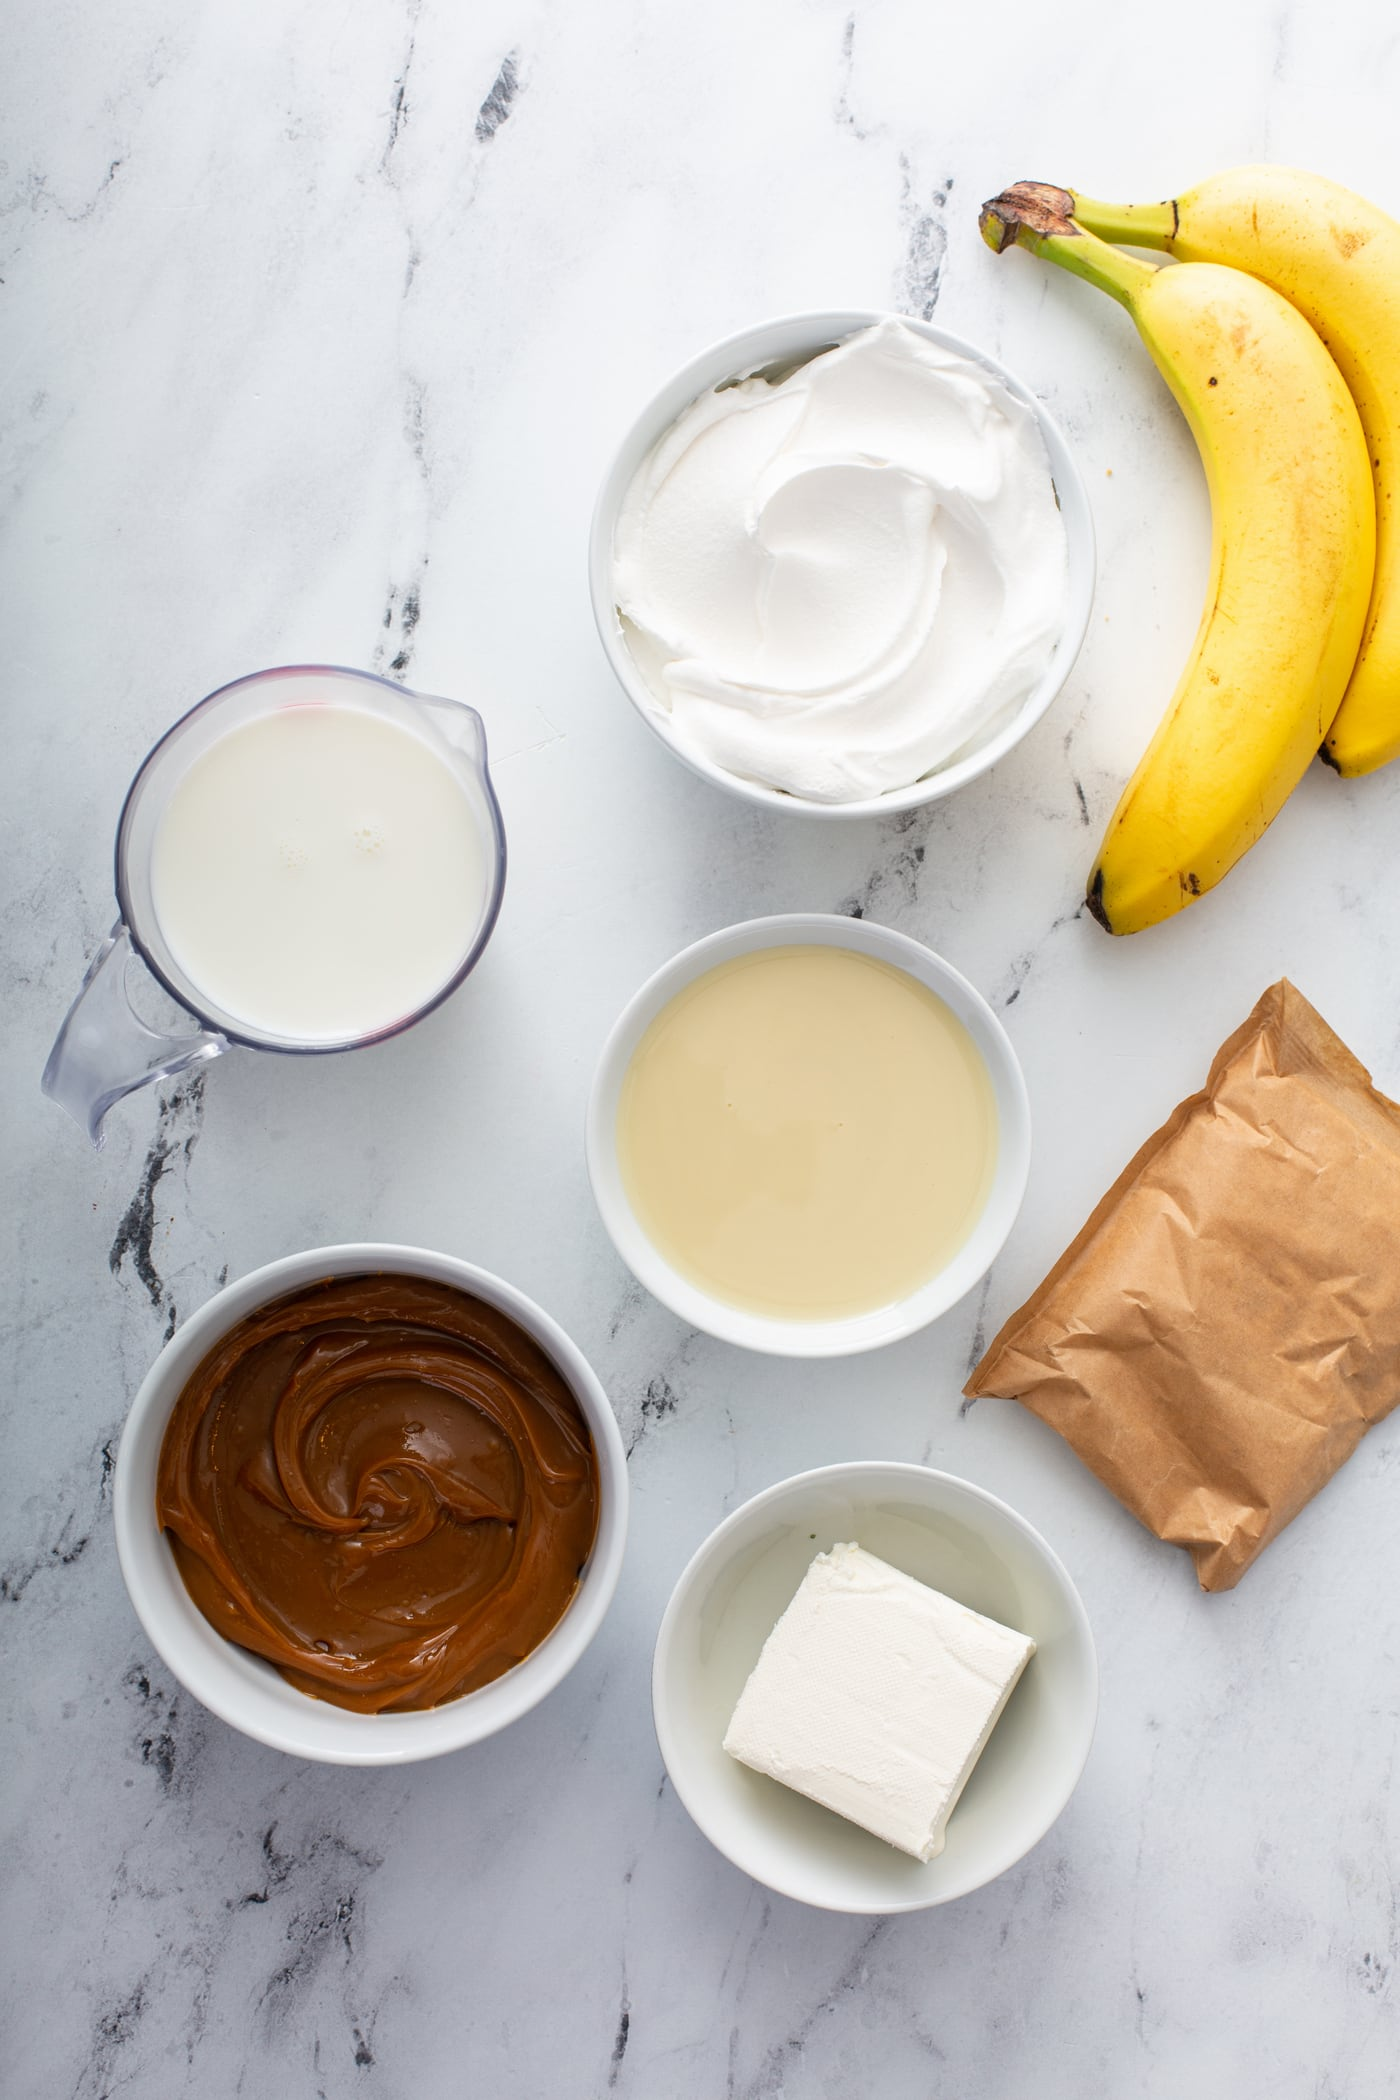 Ingredients for dulce de leche banana cream pie.  There are containers of dulce de leche, pudding, milk, cream, sugar, cream cheese and bananas.